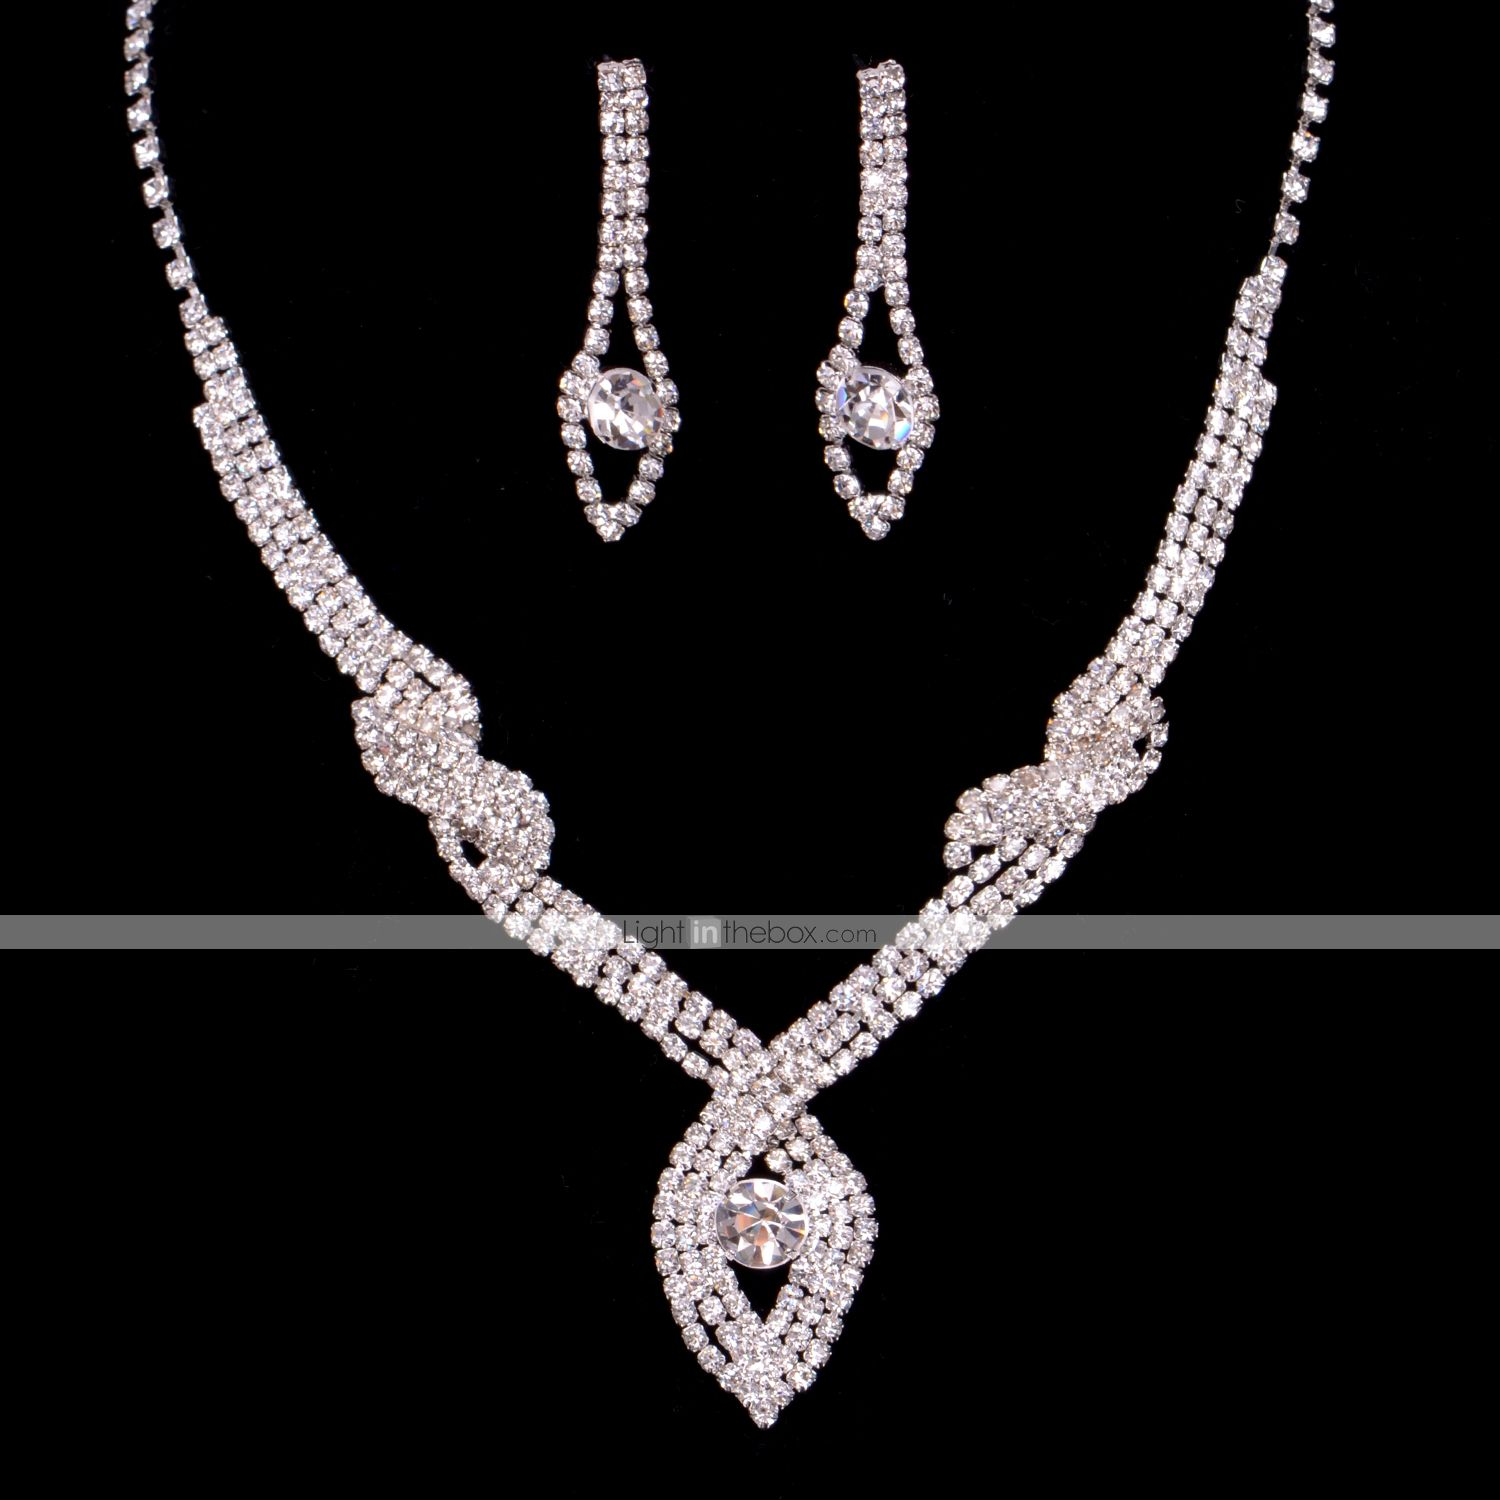 gold online cheap store set jewellery plated costume with jewelry pearl wedding new necklace clear product fashion african crystal